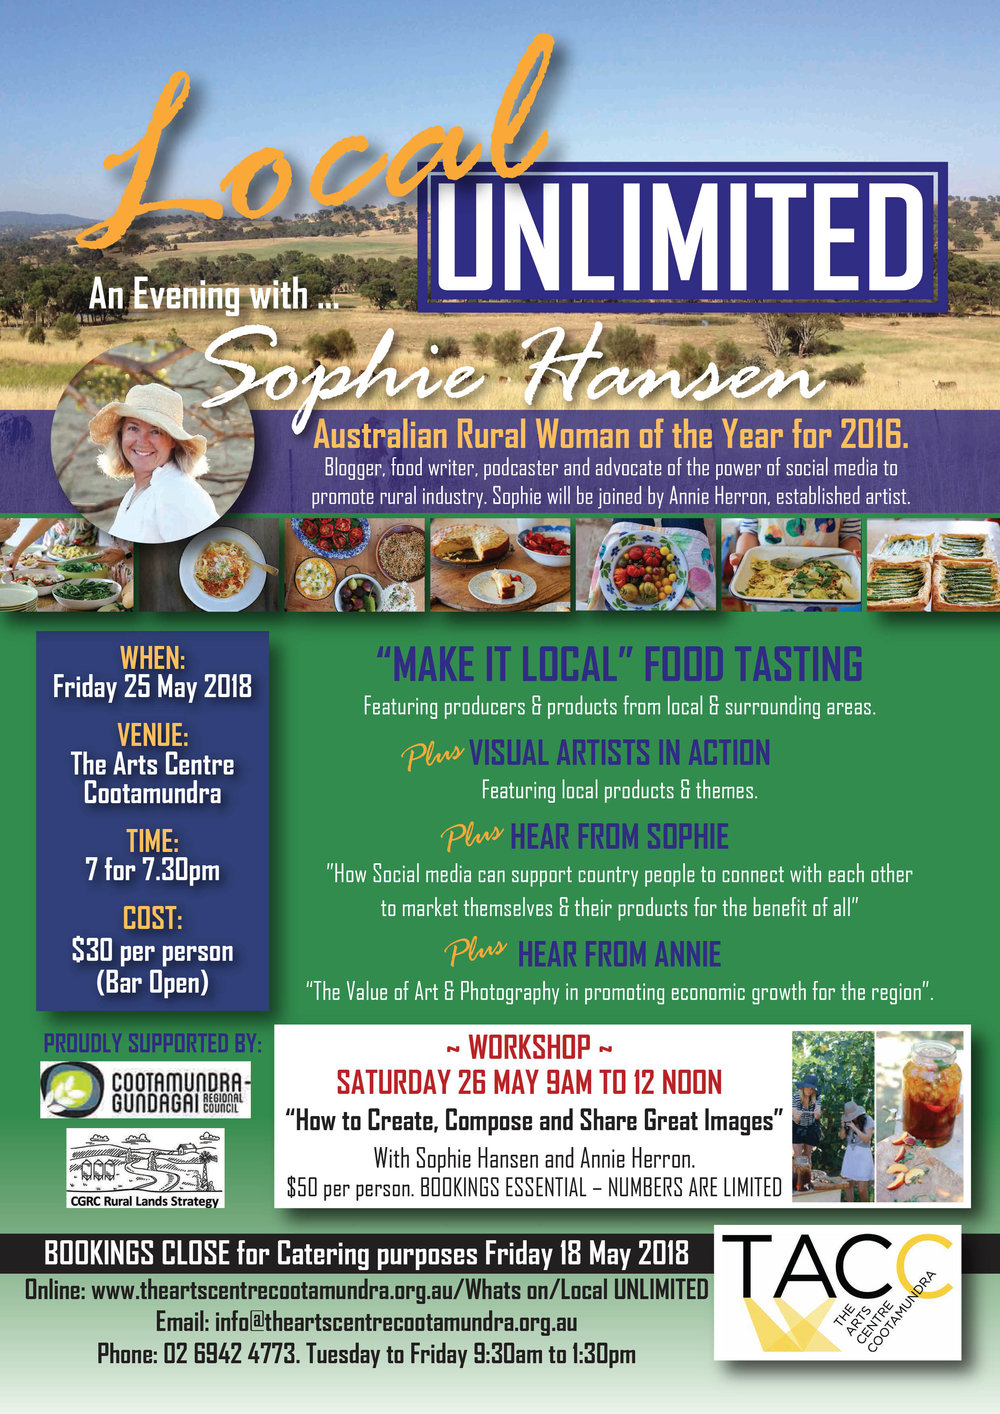 Local+Unlimited+Flyer+2018+NEW+240418.jpg